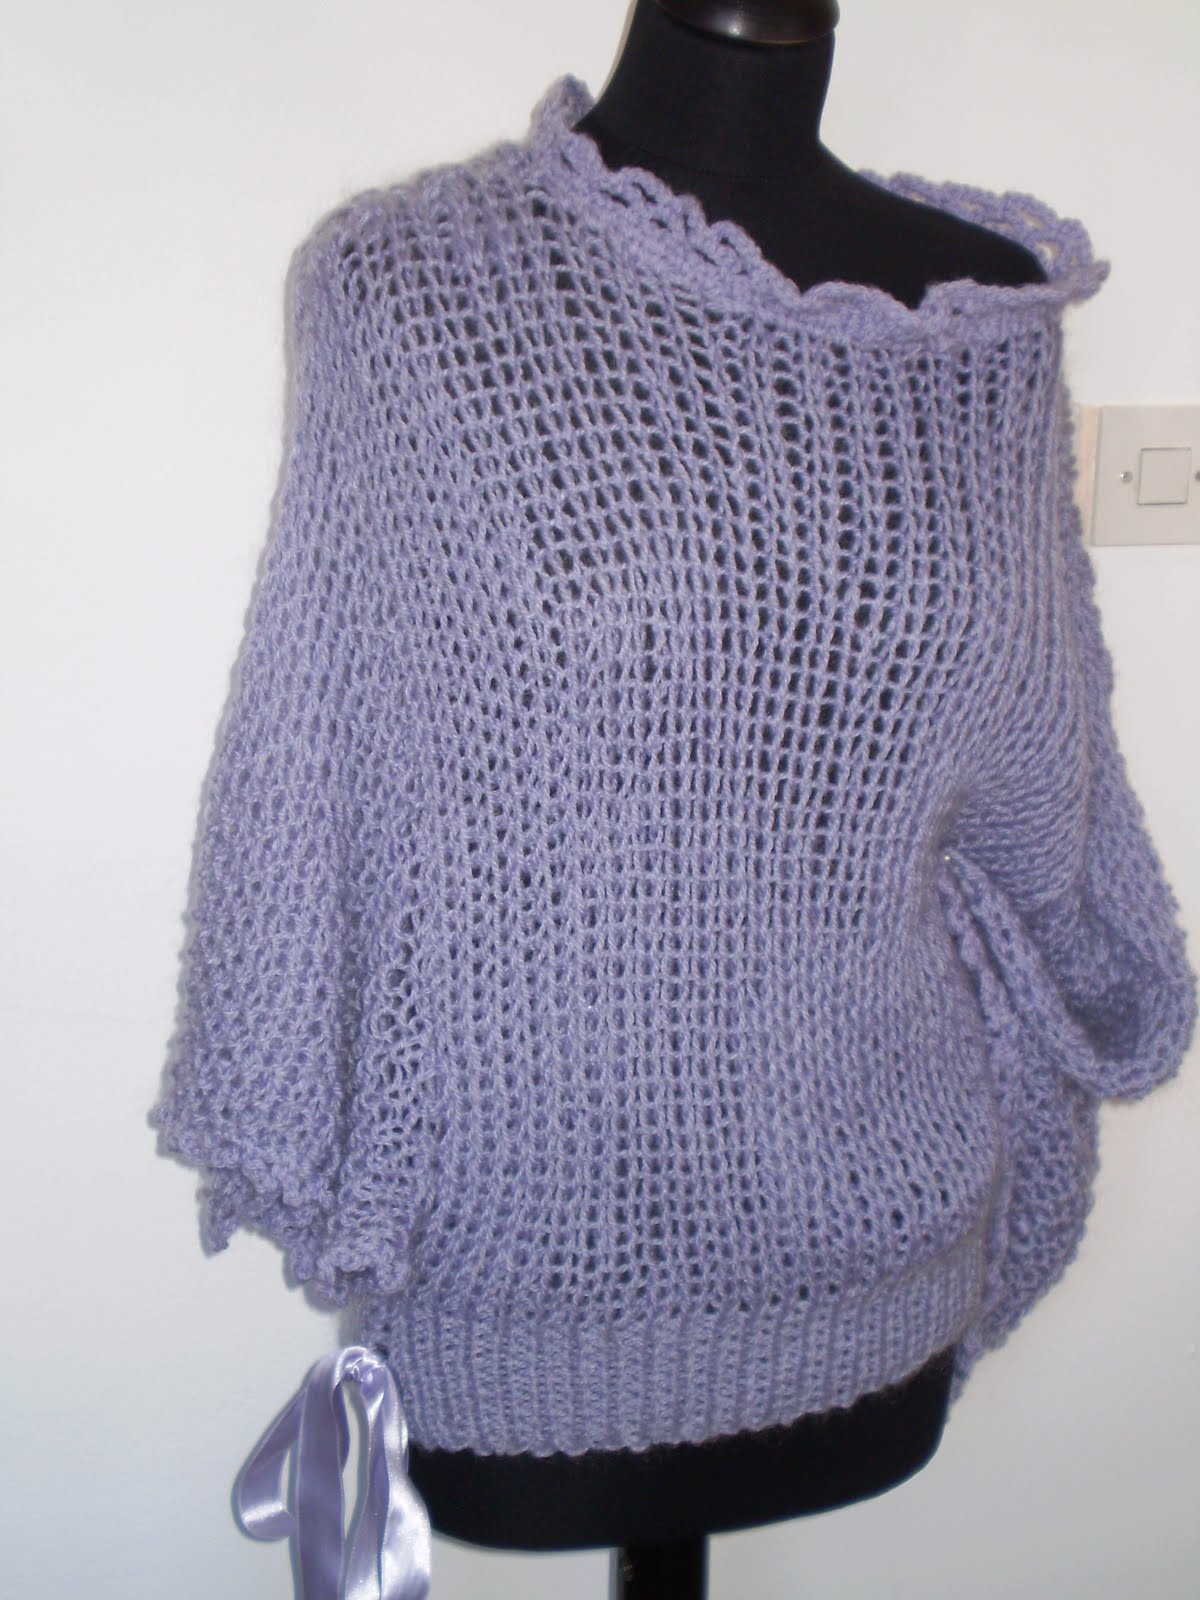 Knitting Pattern Lavender Bag : DIVNAS SWEATERS: Purple woollen hand knitted bag and purple sweater